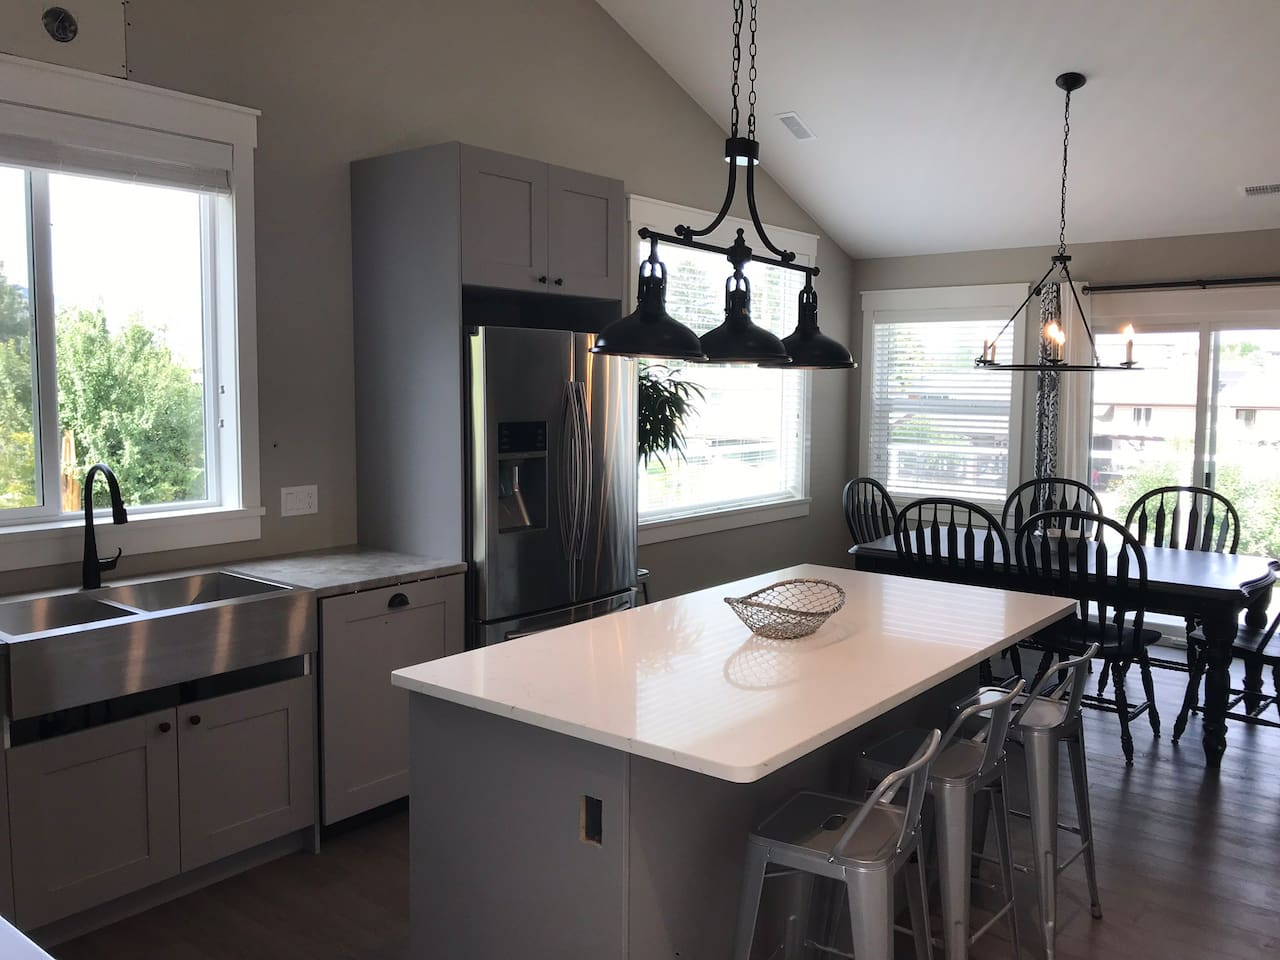 Full kitchen complete with oven, dishwasher, fridge, microwave, quartz countertop on the island, island seating etc. Fully equipped with all the basics and more.